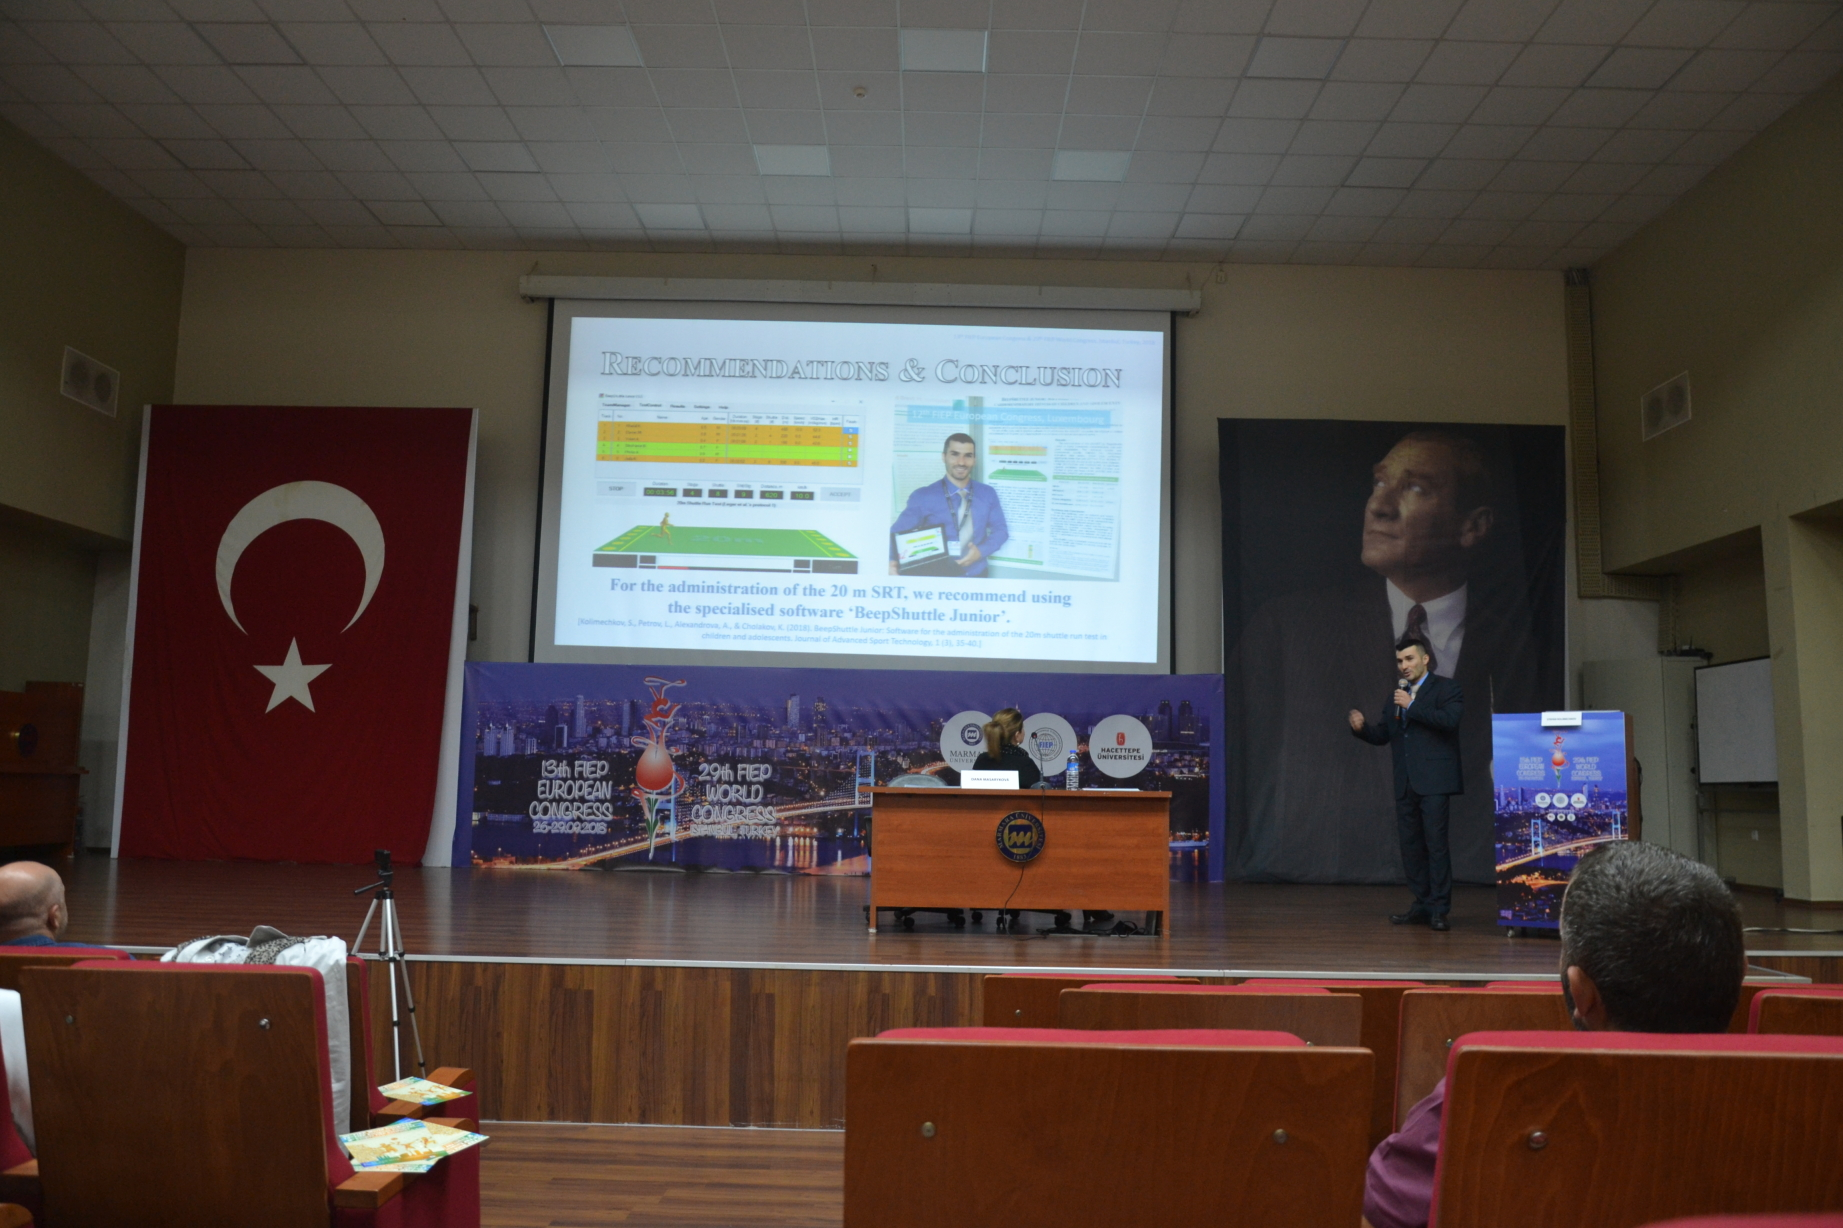 BeepShuttle Junior was recommended at the FIEP Physical Education Congress in Istanbul, Turkey, 2018